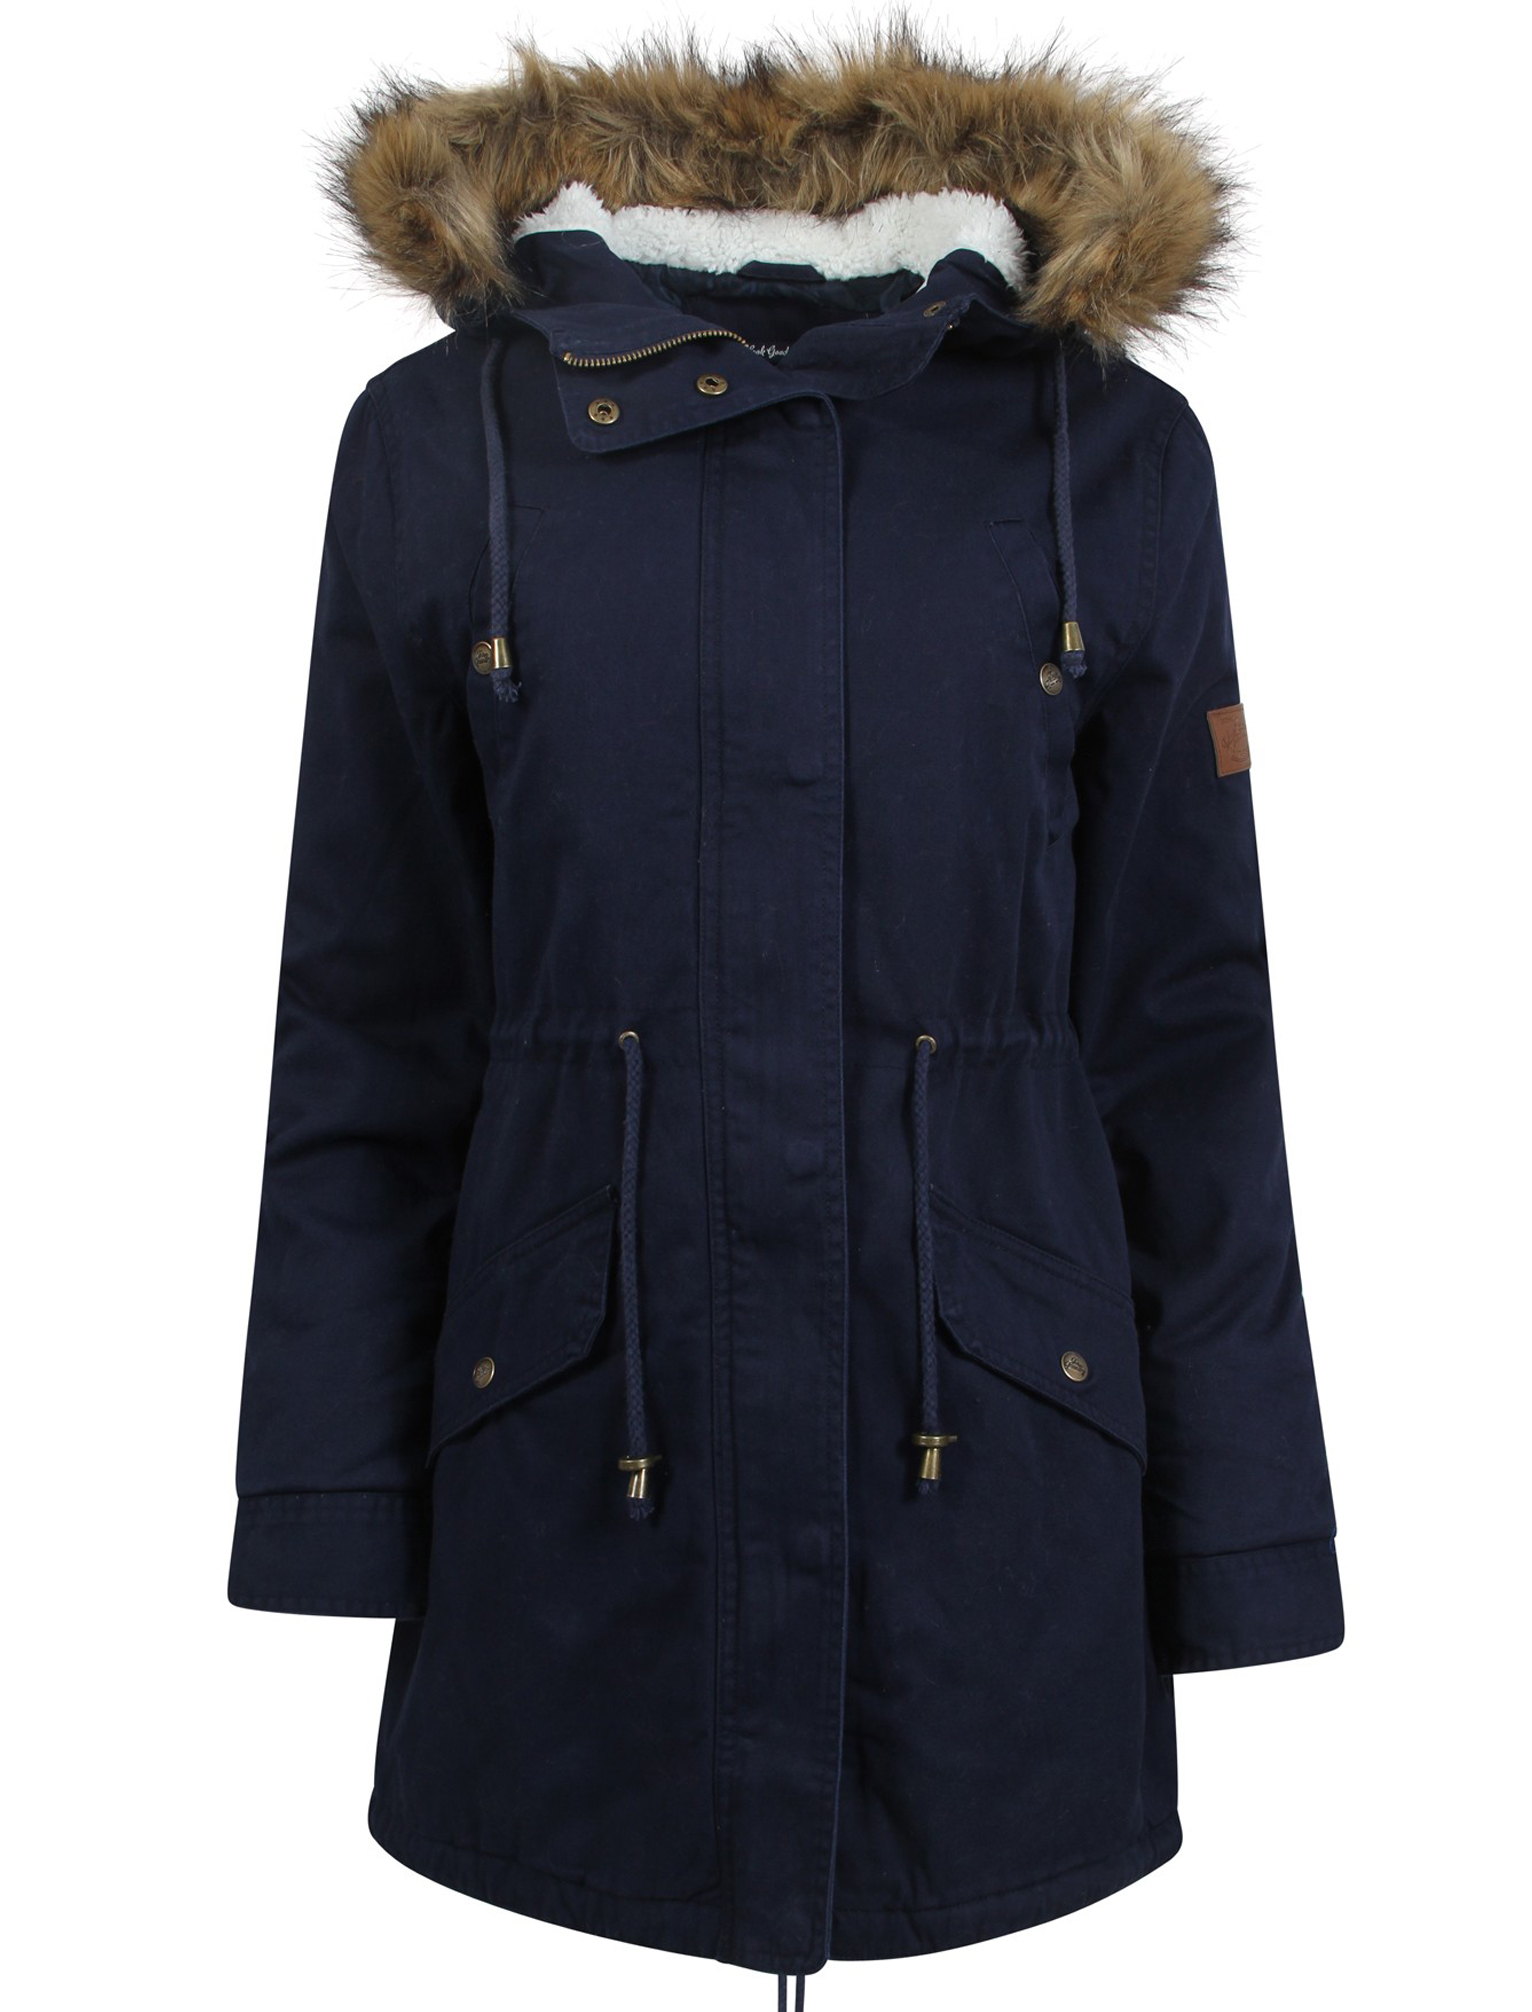 Shop the latest styles of Womens Faux-Fur Trimmed Coats at Macys. Check out our designer collection of chic coats including peacoats, trench coats, puffer coats and more! S13 Eskimo Faux-Fur-Trim Hooded Parka $ Sale $